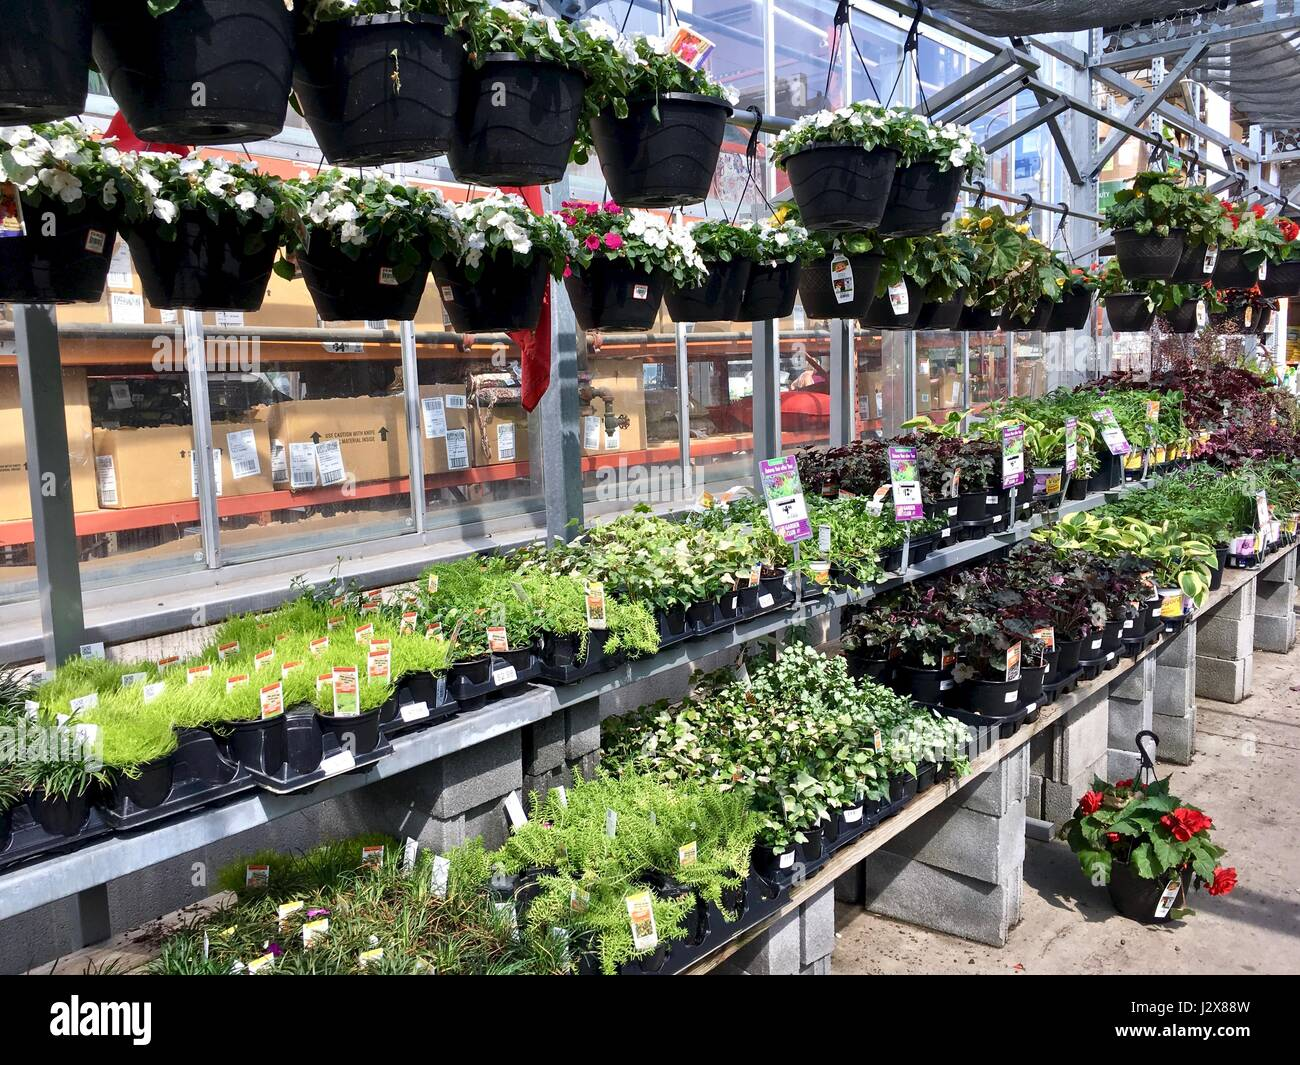 The Home Depot Outdoor Nursery With Garden Plant And Flowers Stock